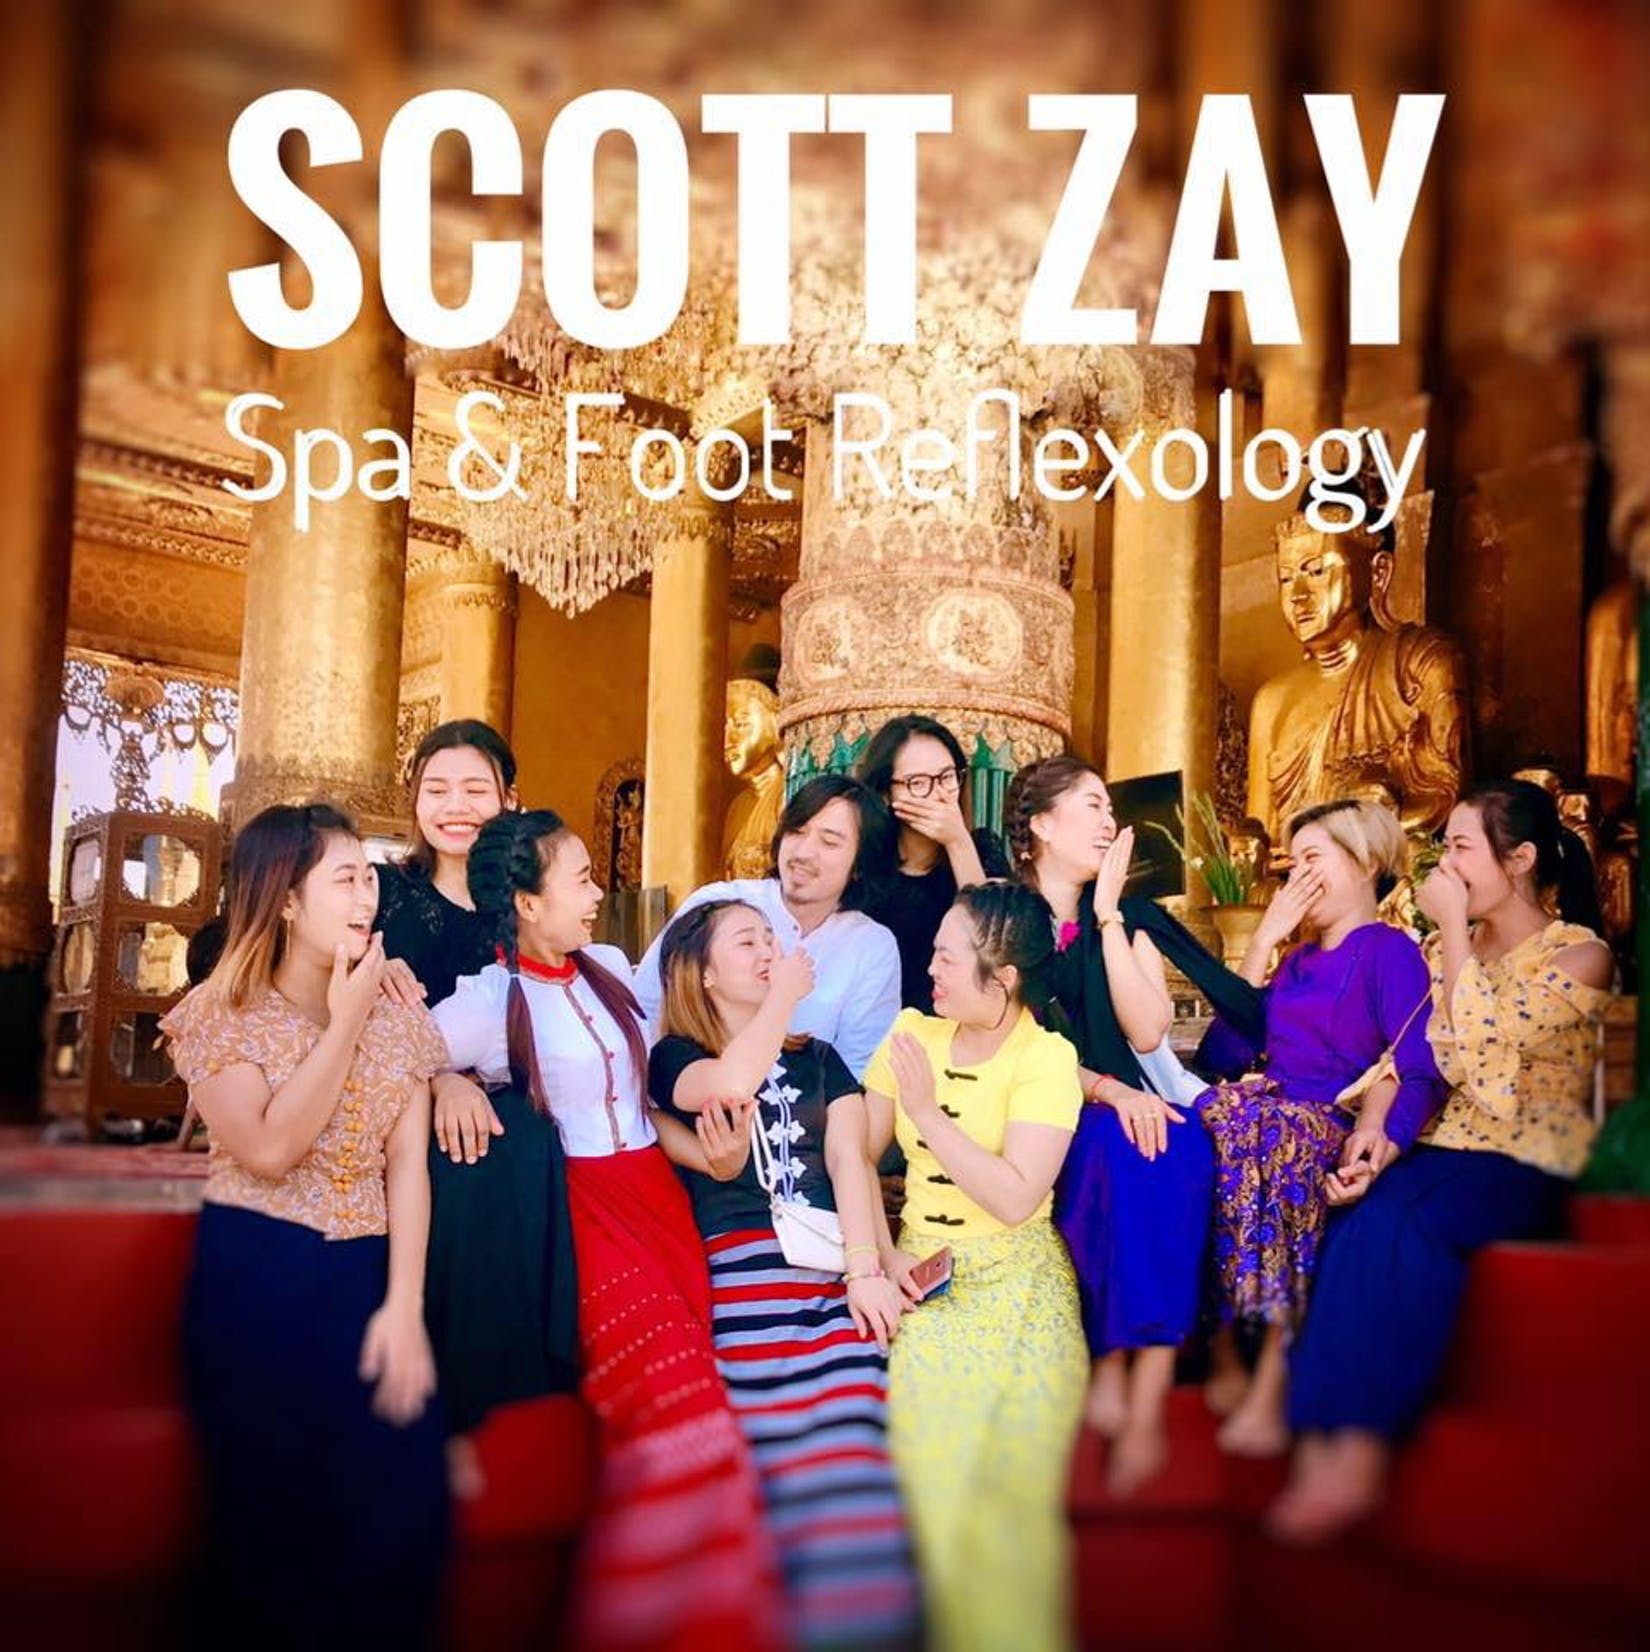 Scott Zay Spa and Massage 51 street | Beauty